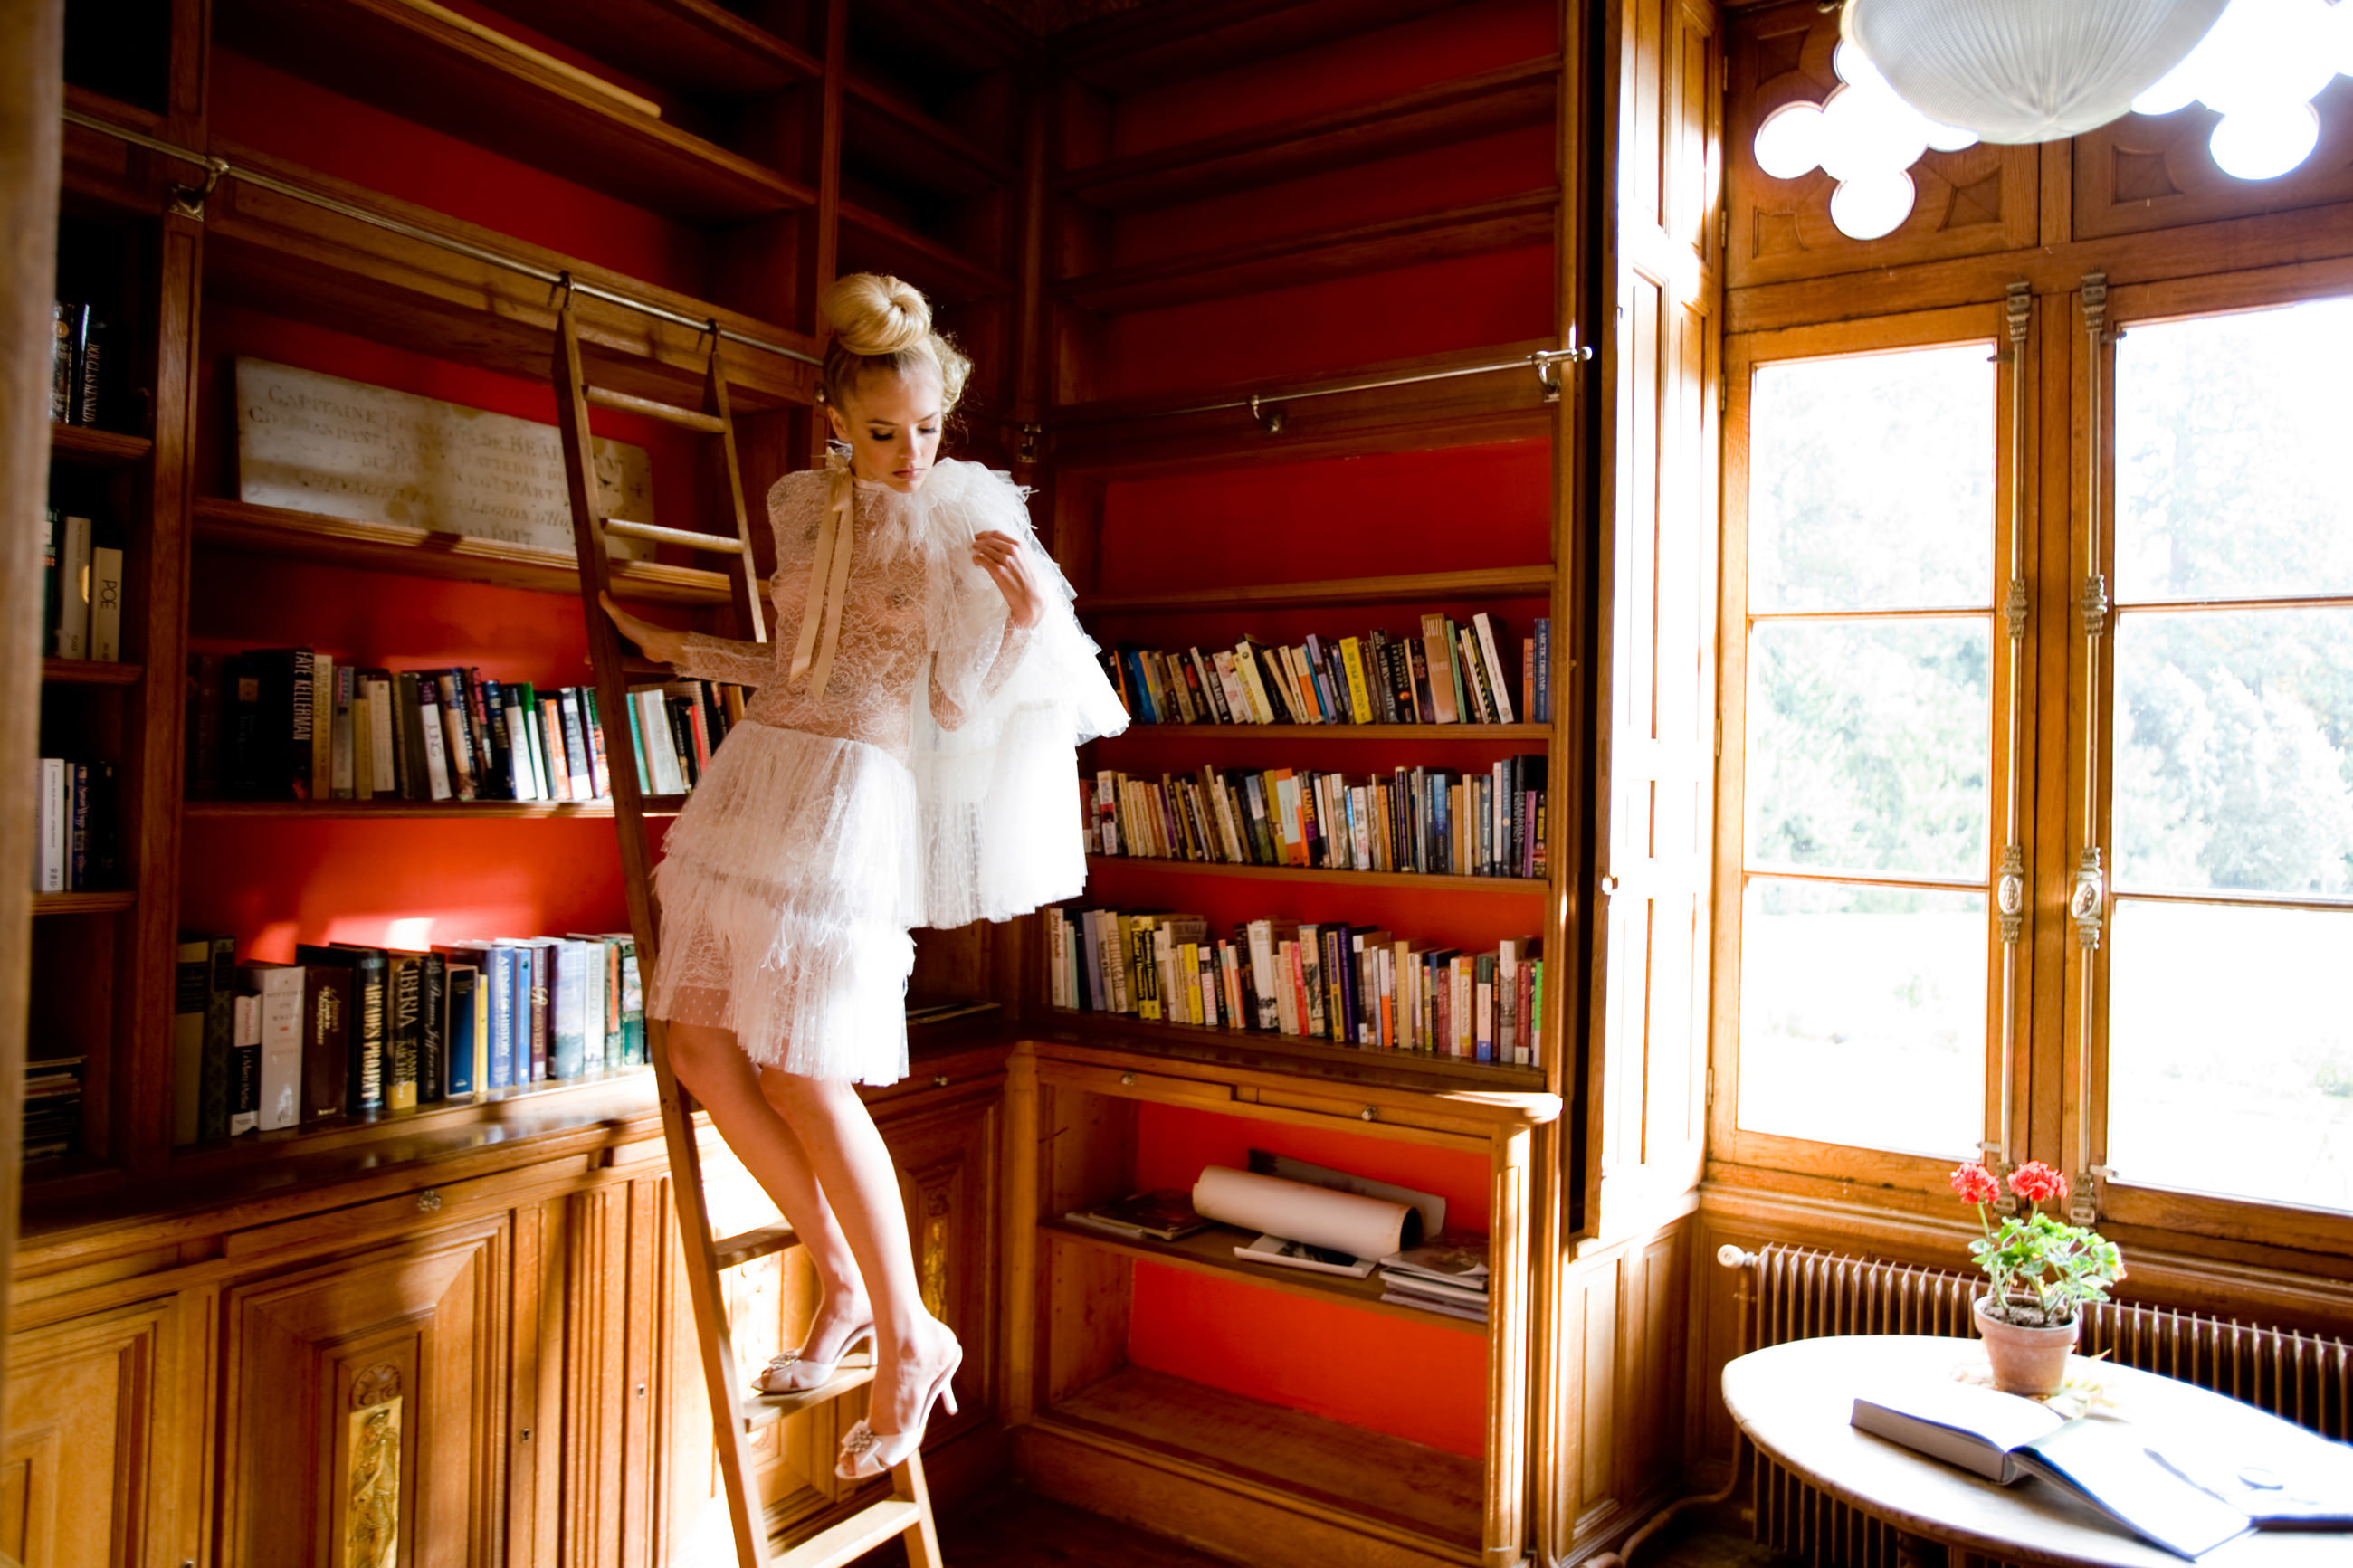 bride on library ladder - photo by La Vie Photography